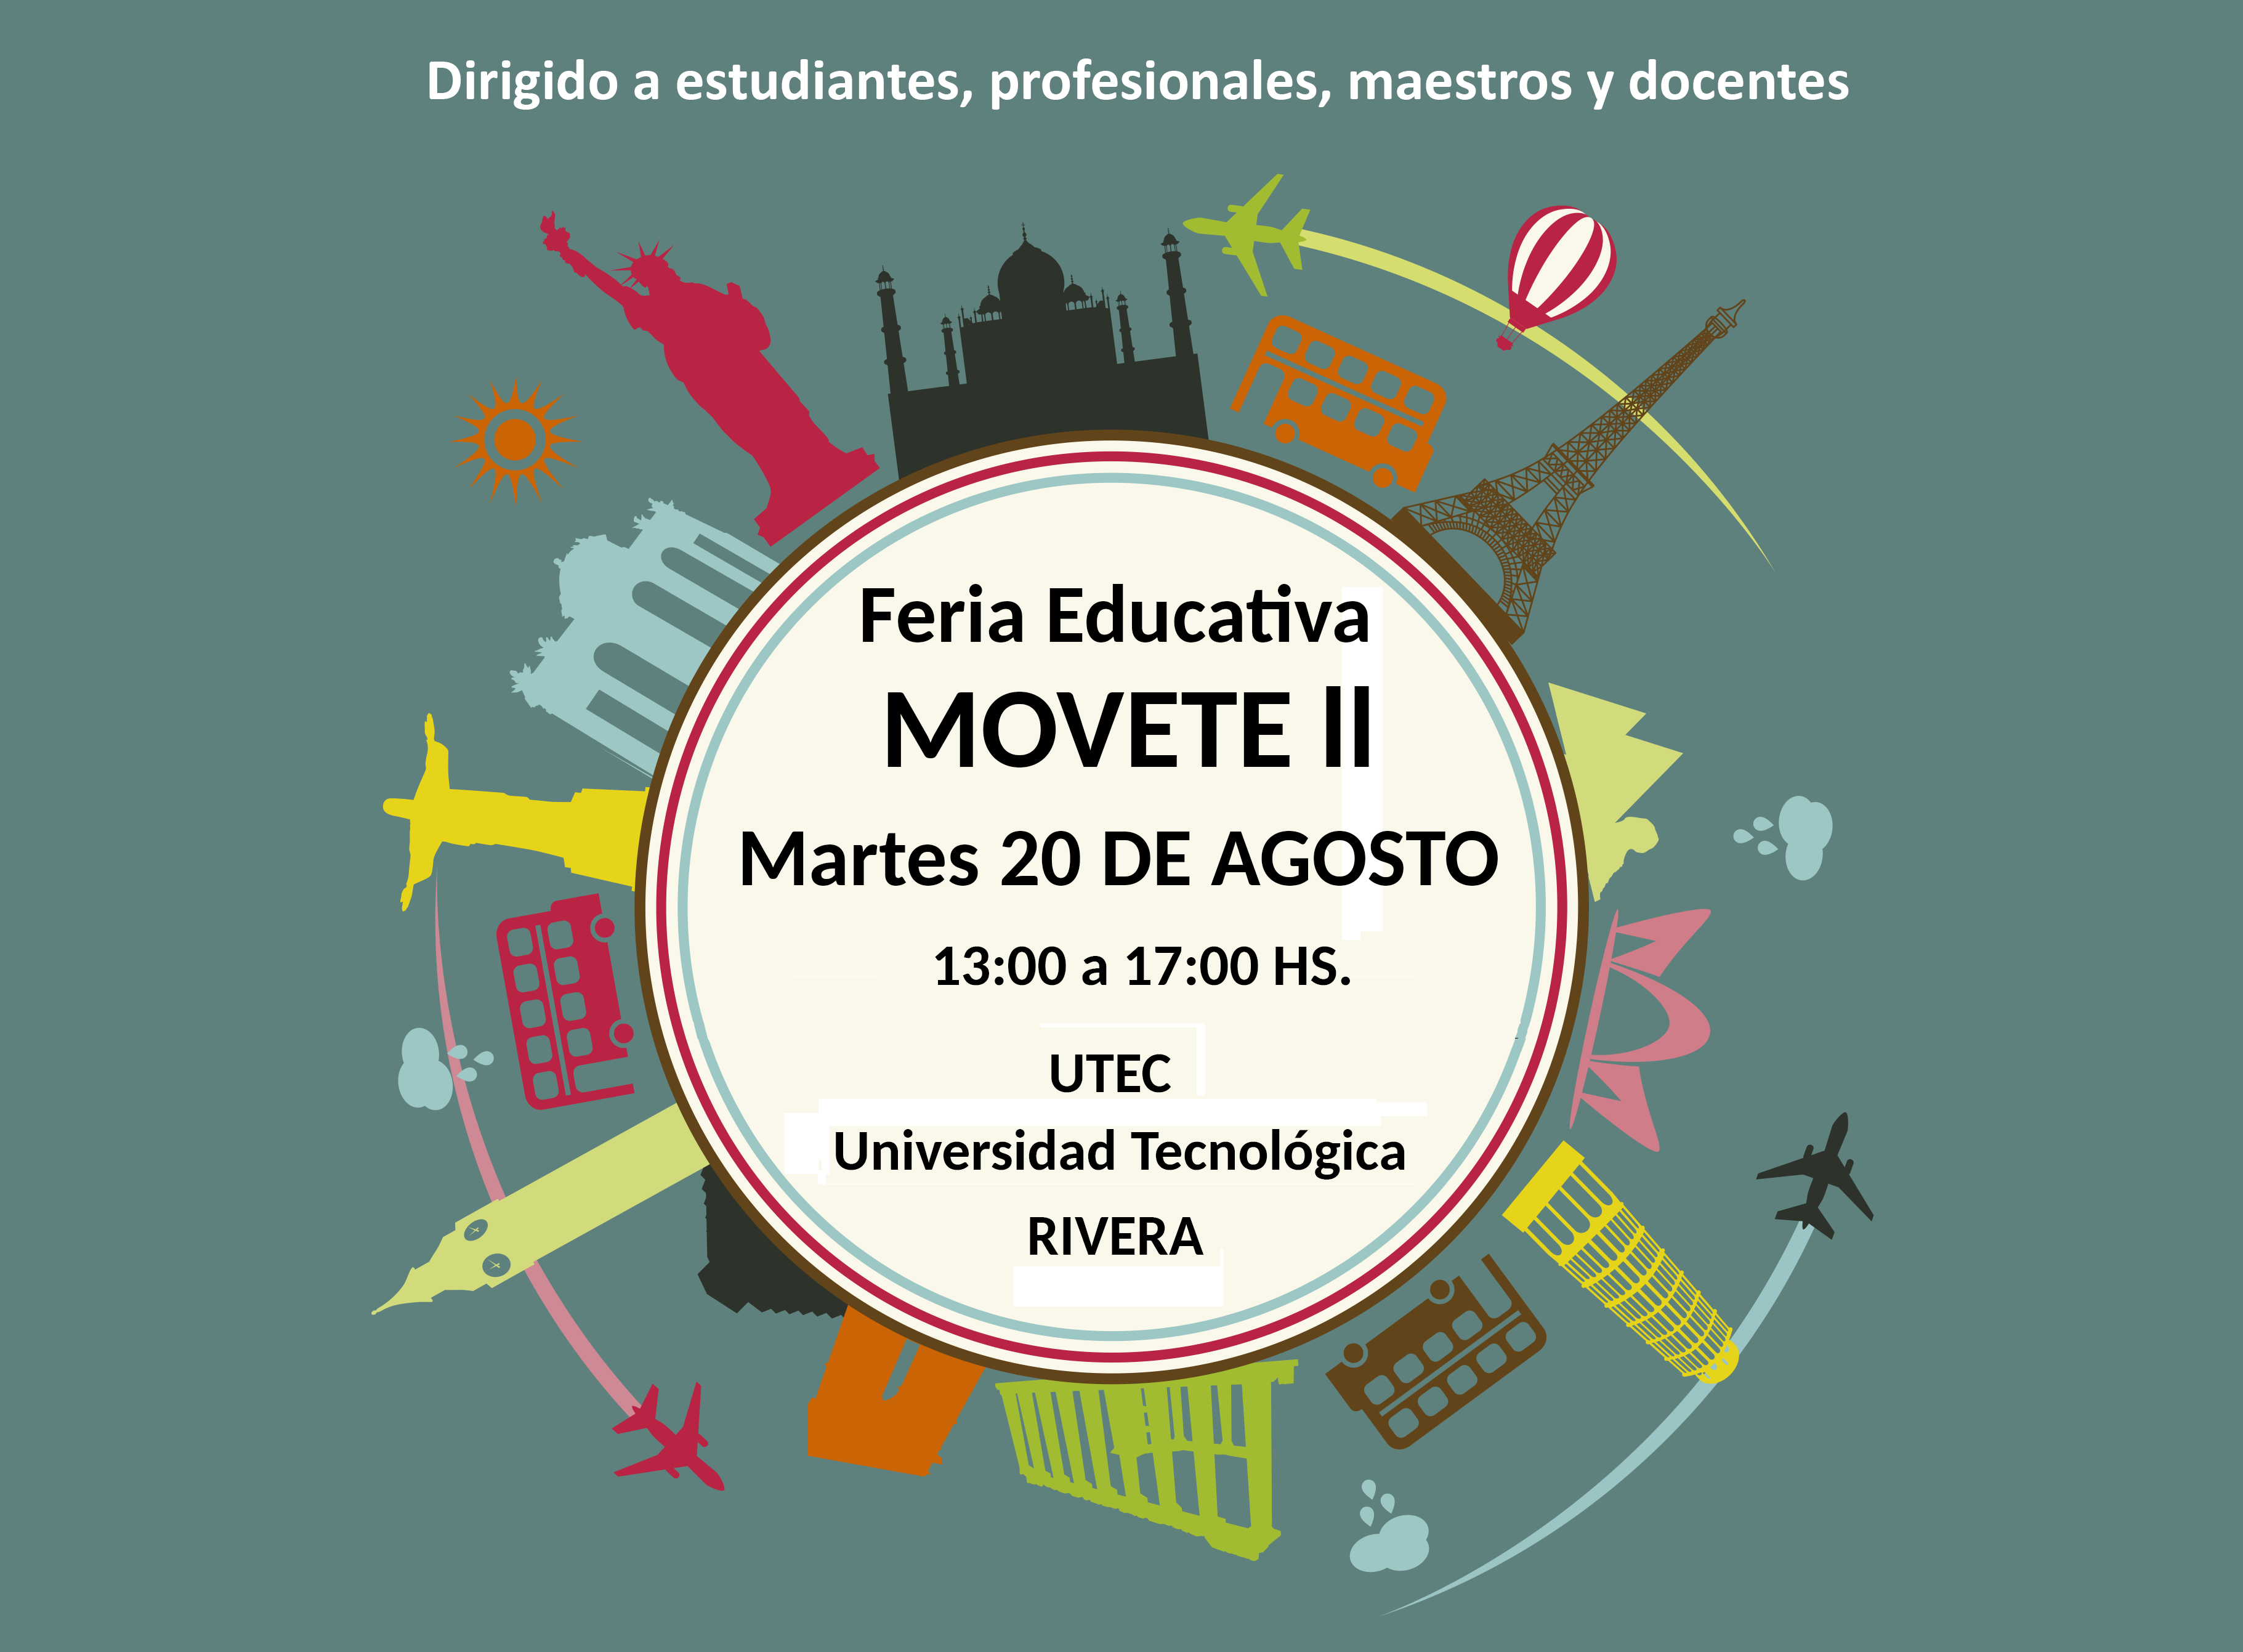 Feria Educativa MOVETE II